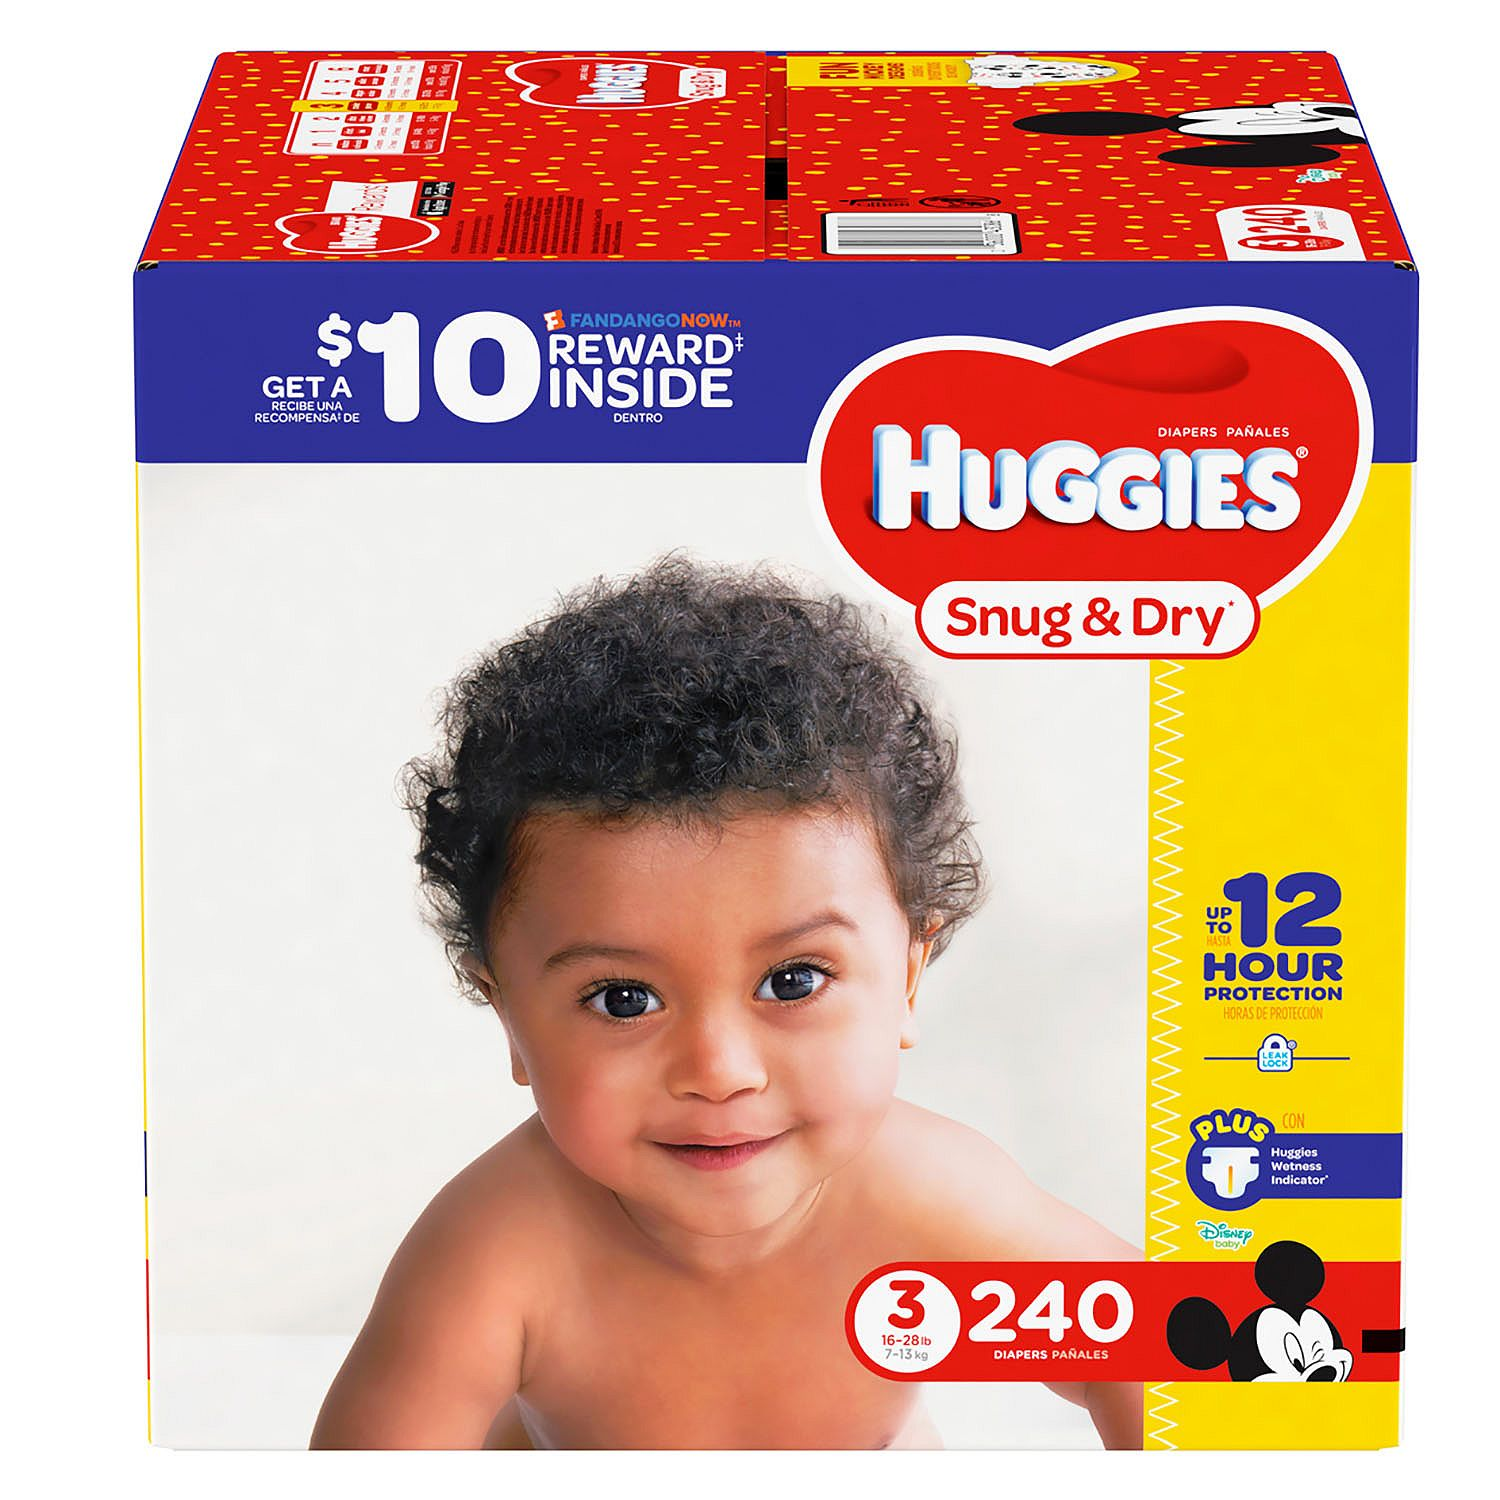 Huggies Snug & Dry Diapers - Bulk Qty, Free Shipping - Comfortable, Soft, No leaking & Good nite Diapers